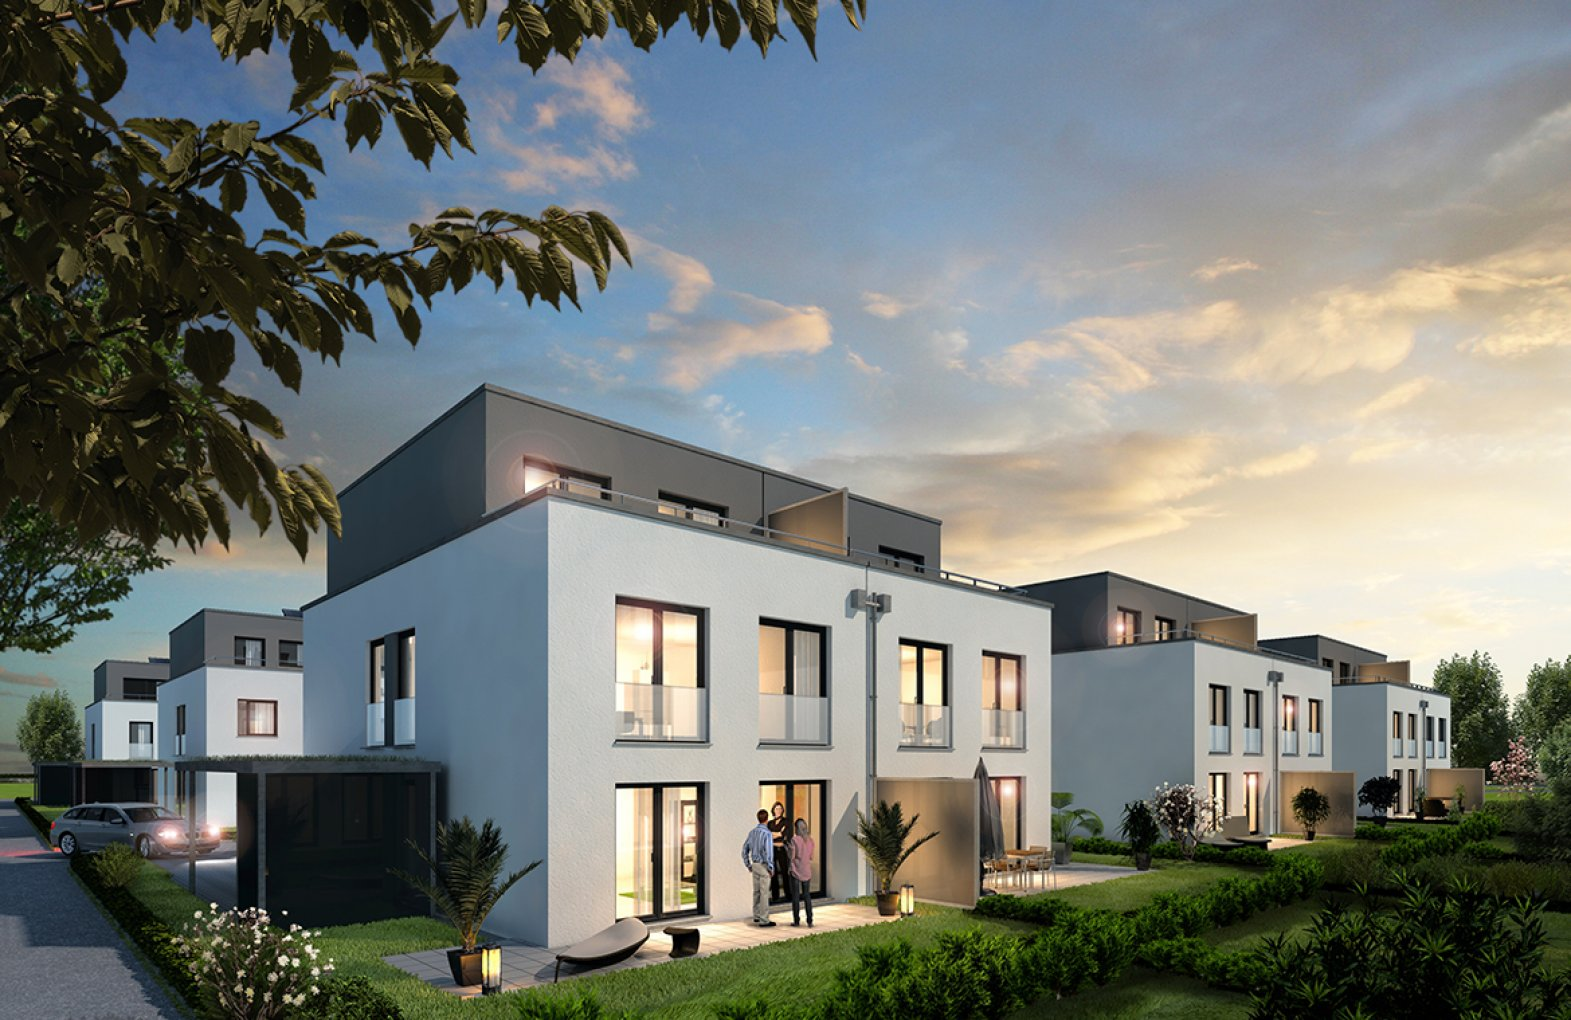 Bright Living Doppelhaushälfte Bad Vilbel